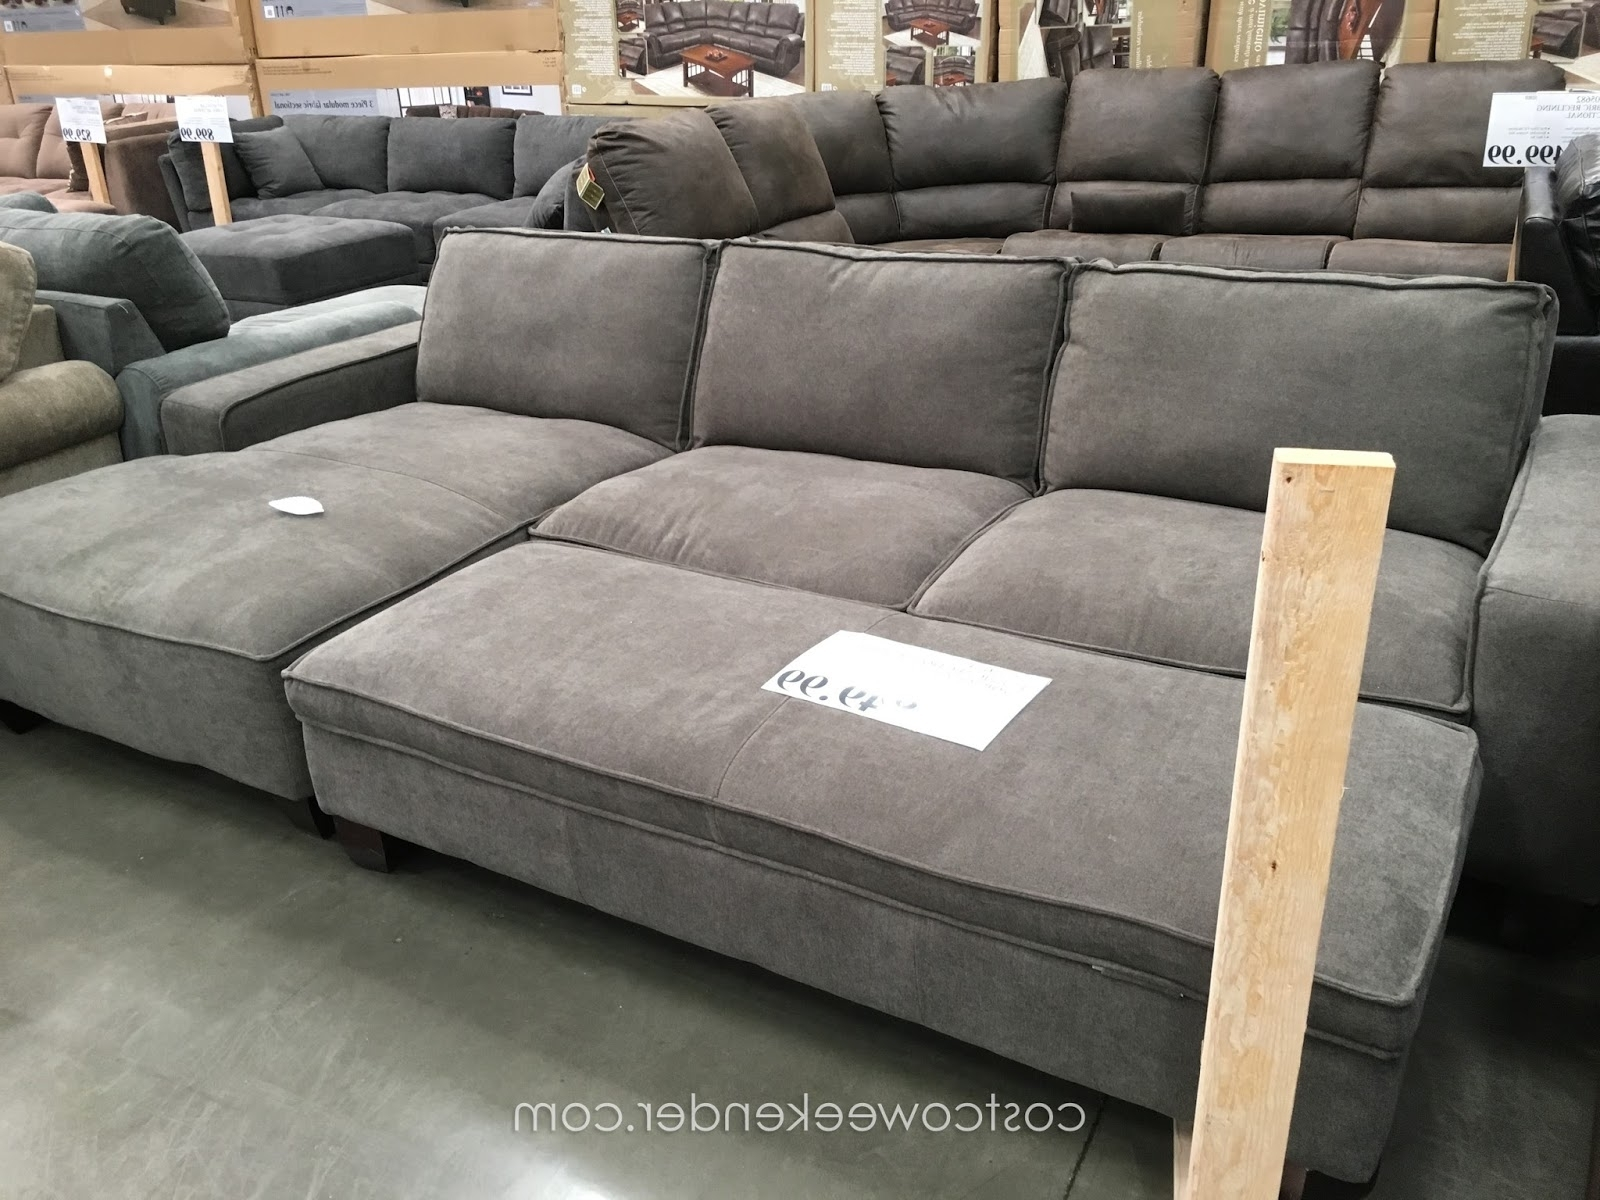 Favorite Extra Large Sofas For Furniture: Nice Extra Large Sectional Sofa For Large Living Room (View 6 of 20)